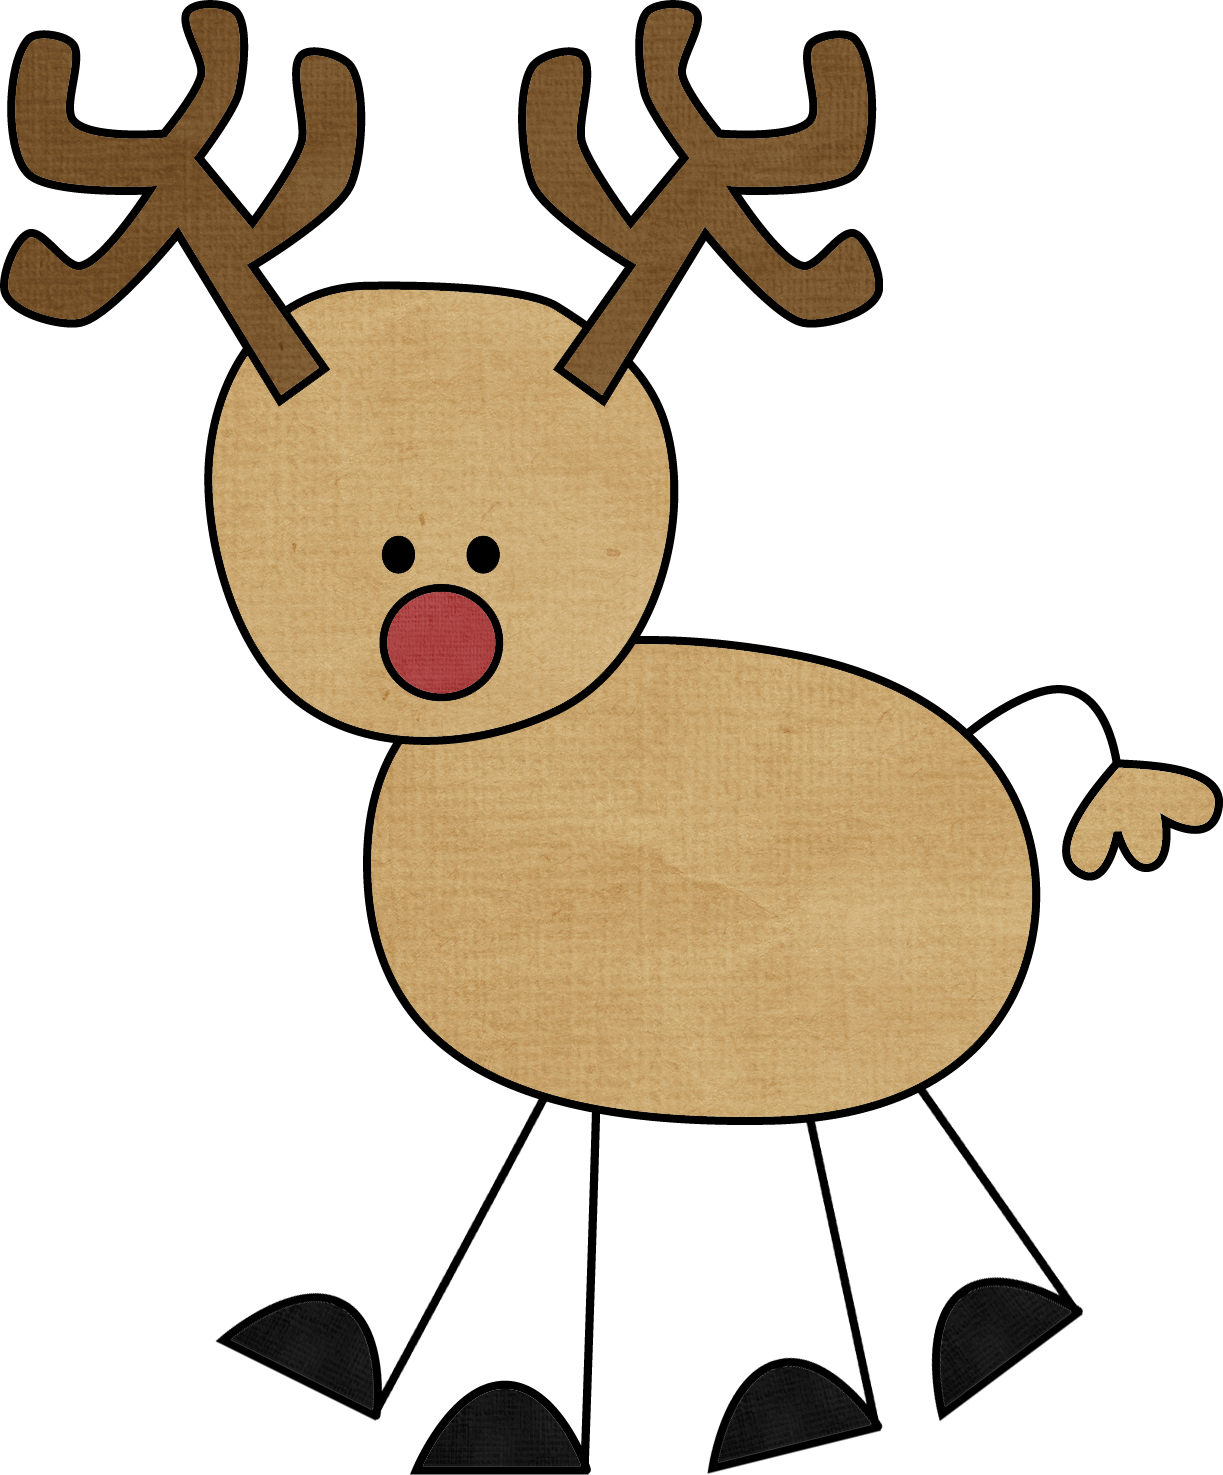 Sante and reindeer sun laghs clipart banner royalty free library THE FREE CHOICE E-ZINE: December 2013 banner royalty free library